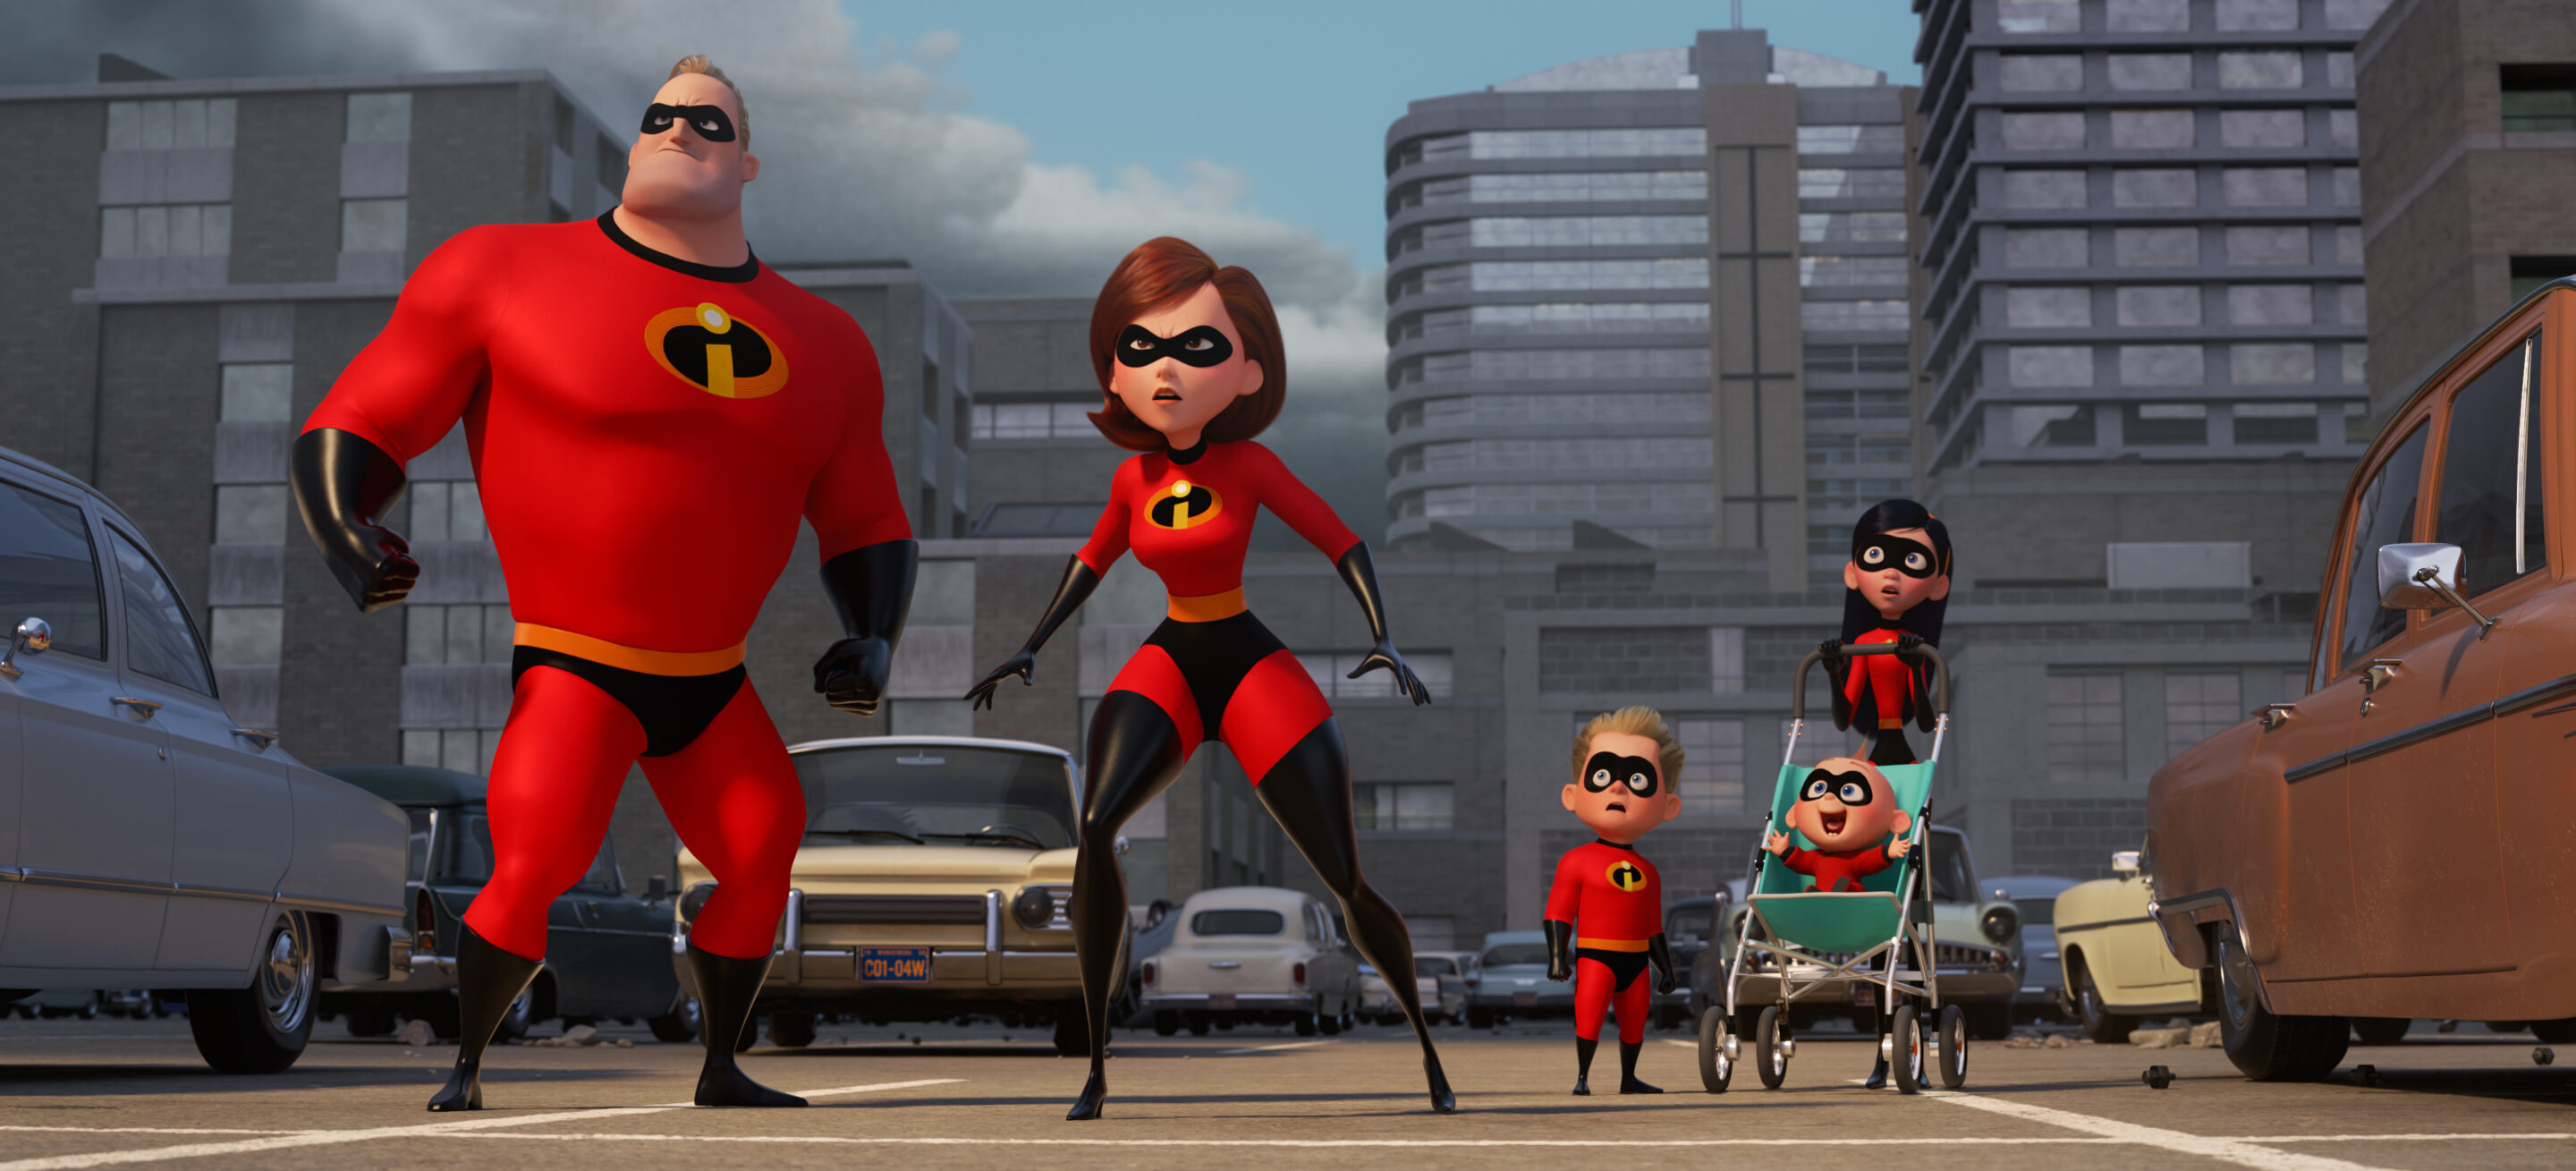 Incredibles25a5e49448bf76